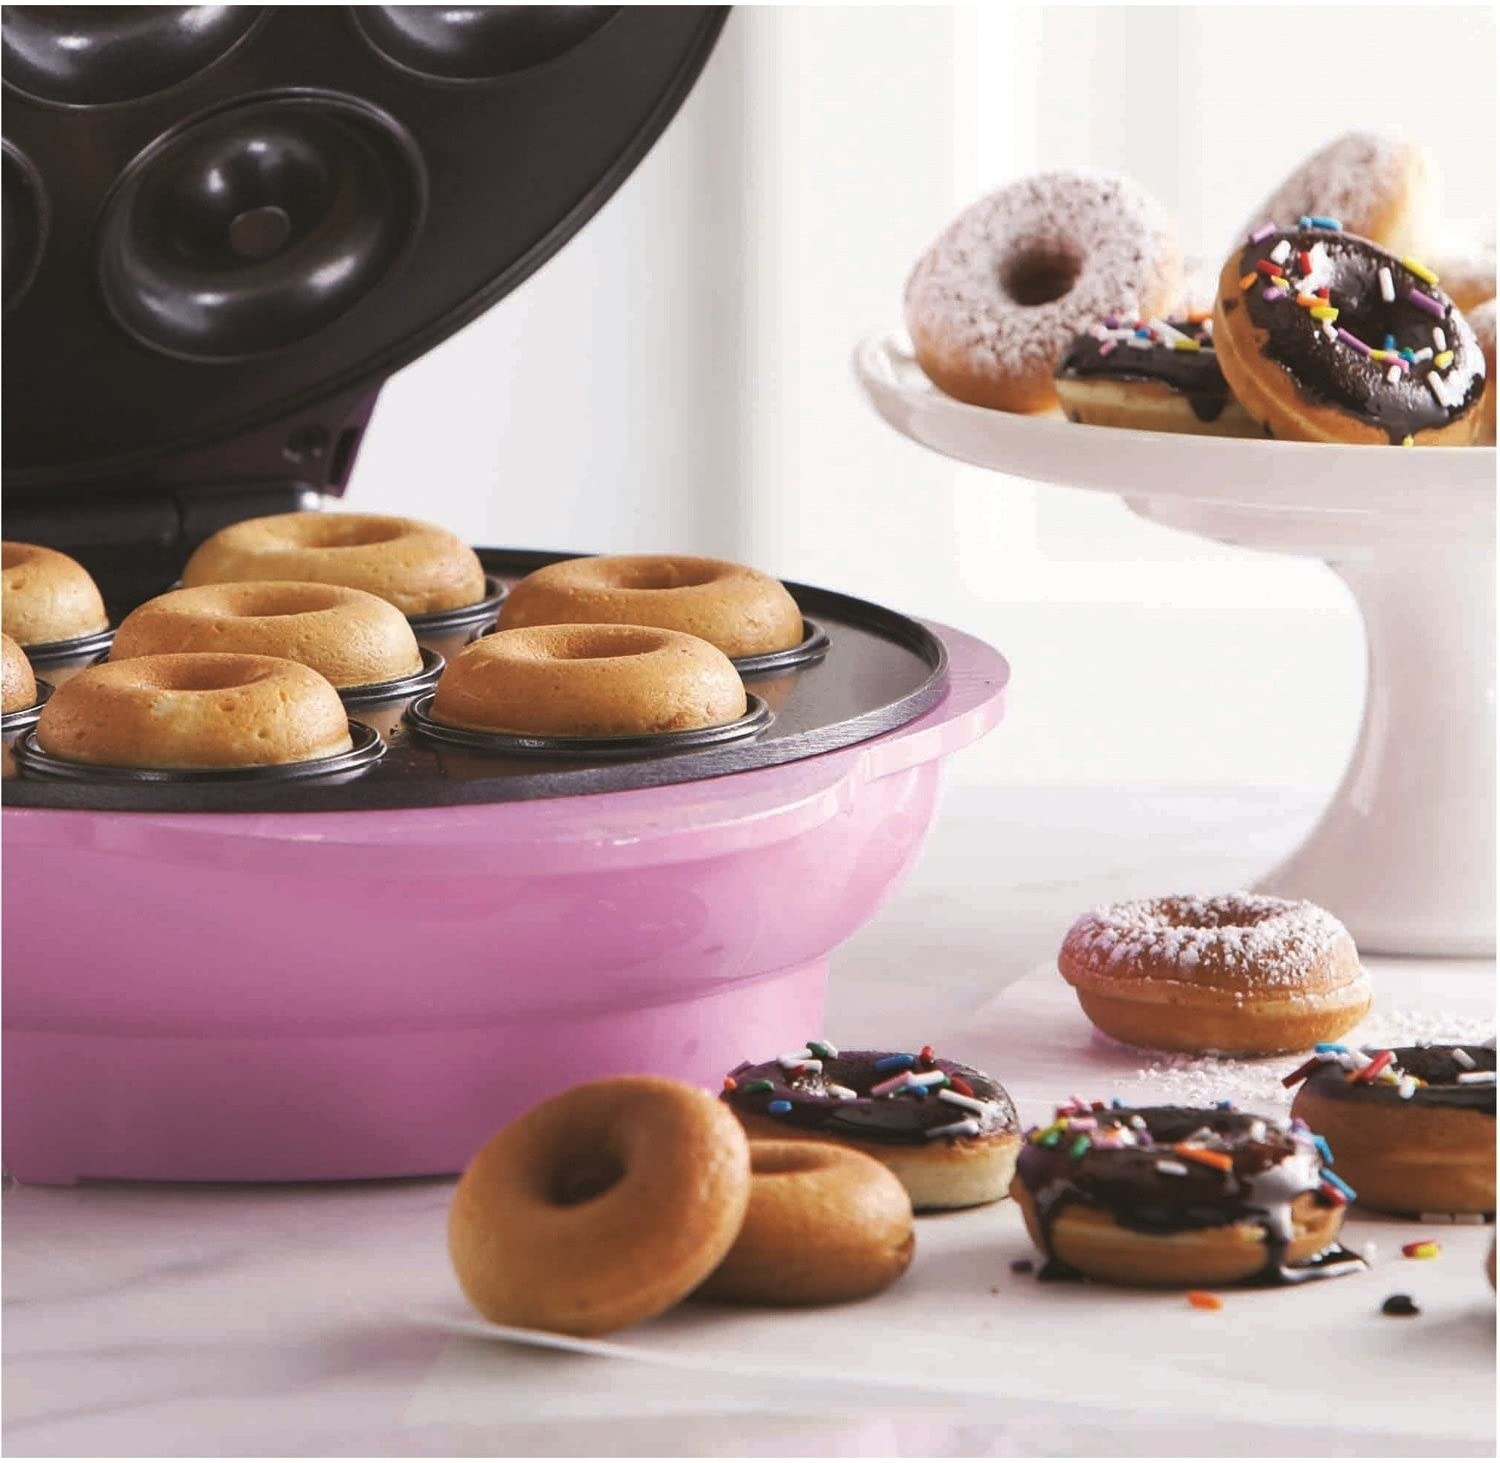 A close up of the open donut maker containing freshly baked donuts